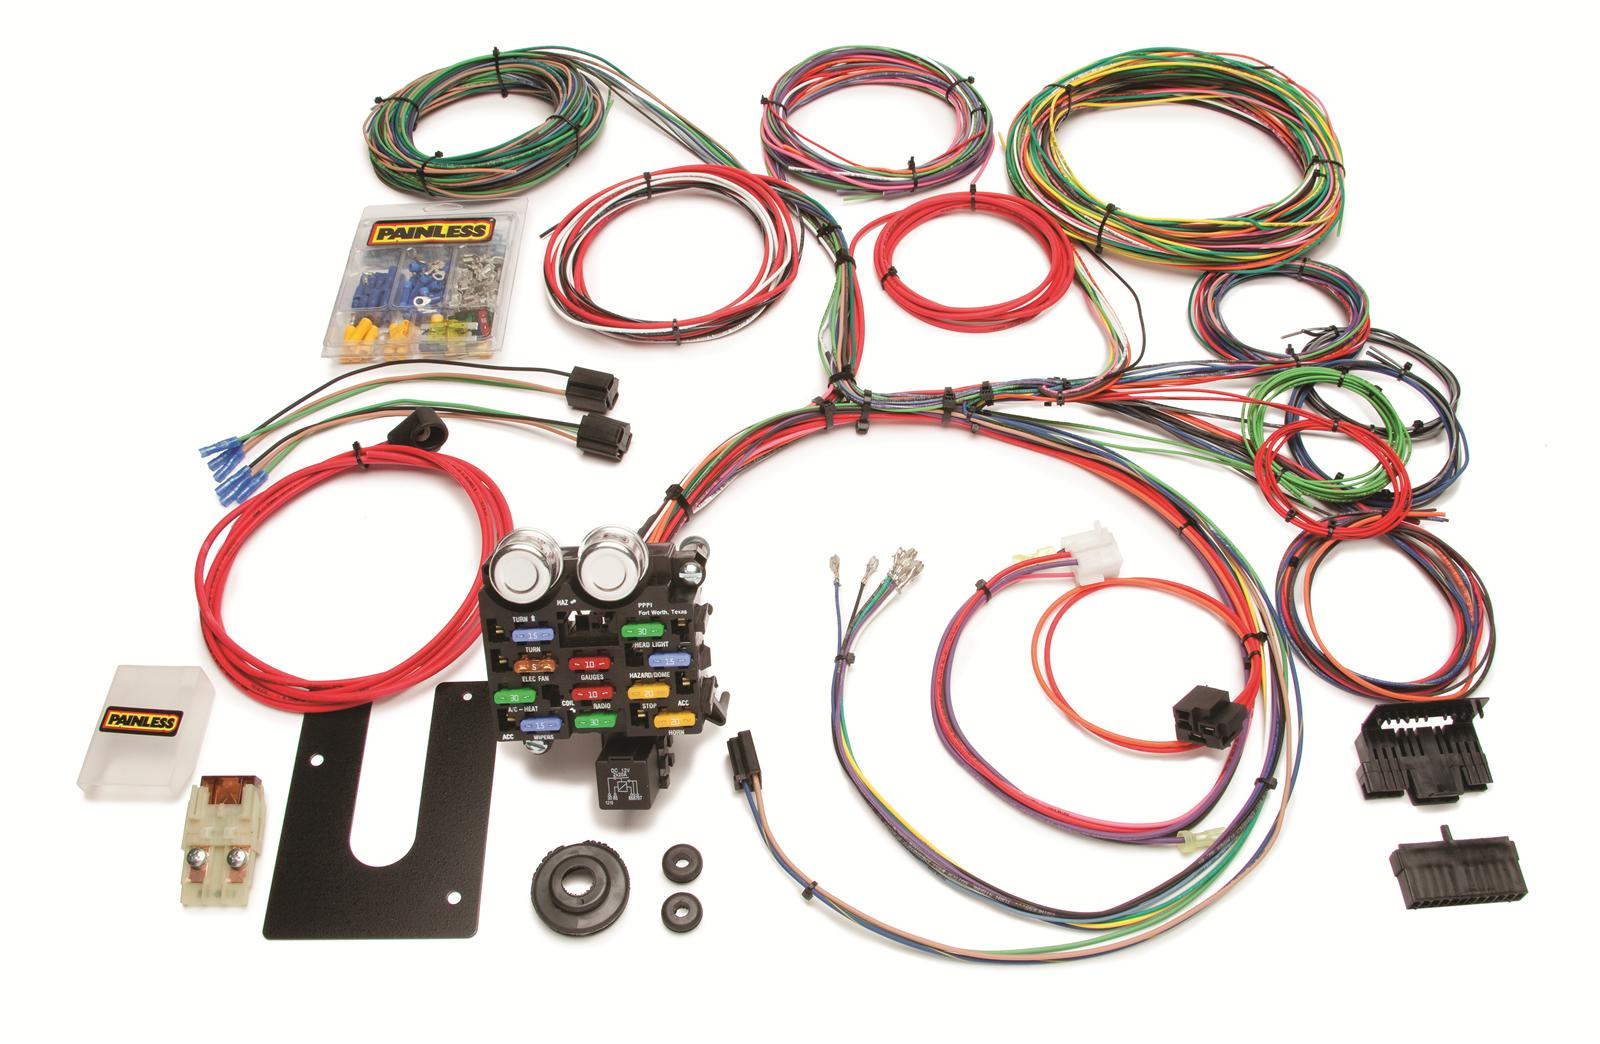 painless performance 21 circuit universal harnesses 10101 free rh summitracing com